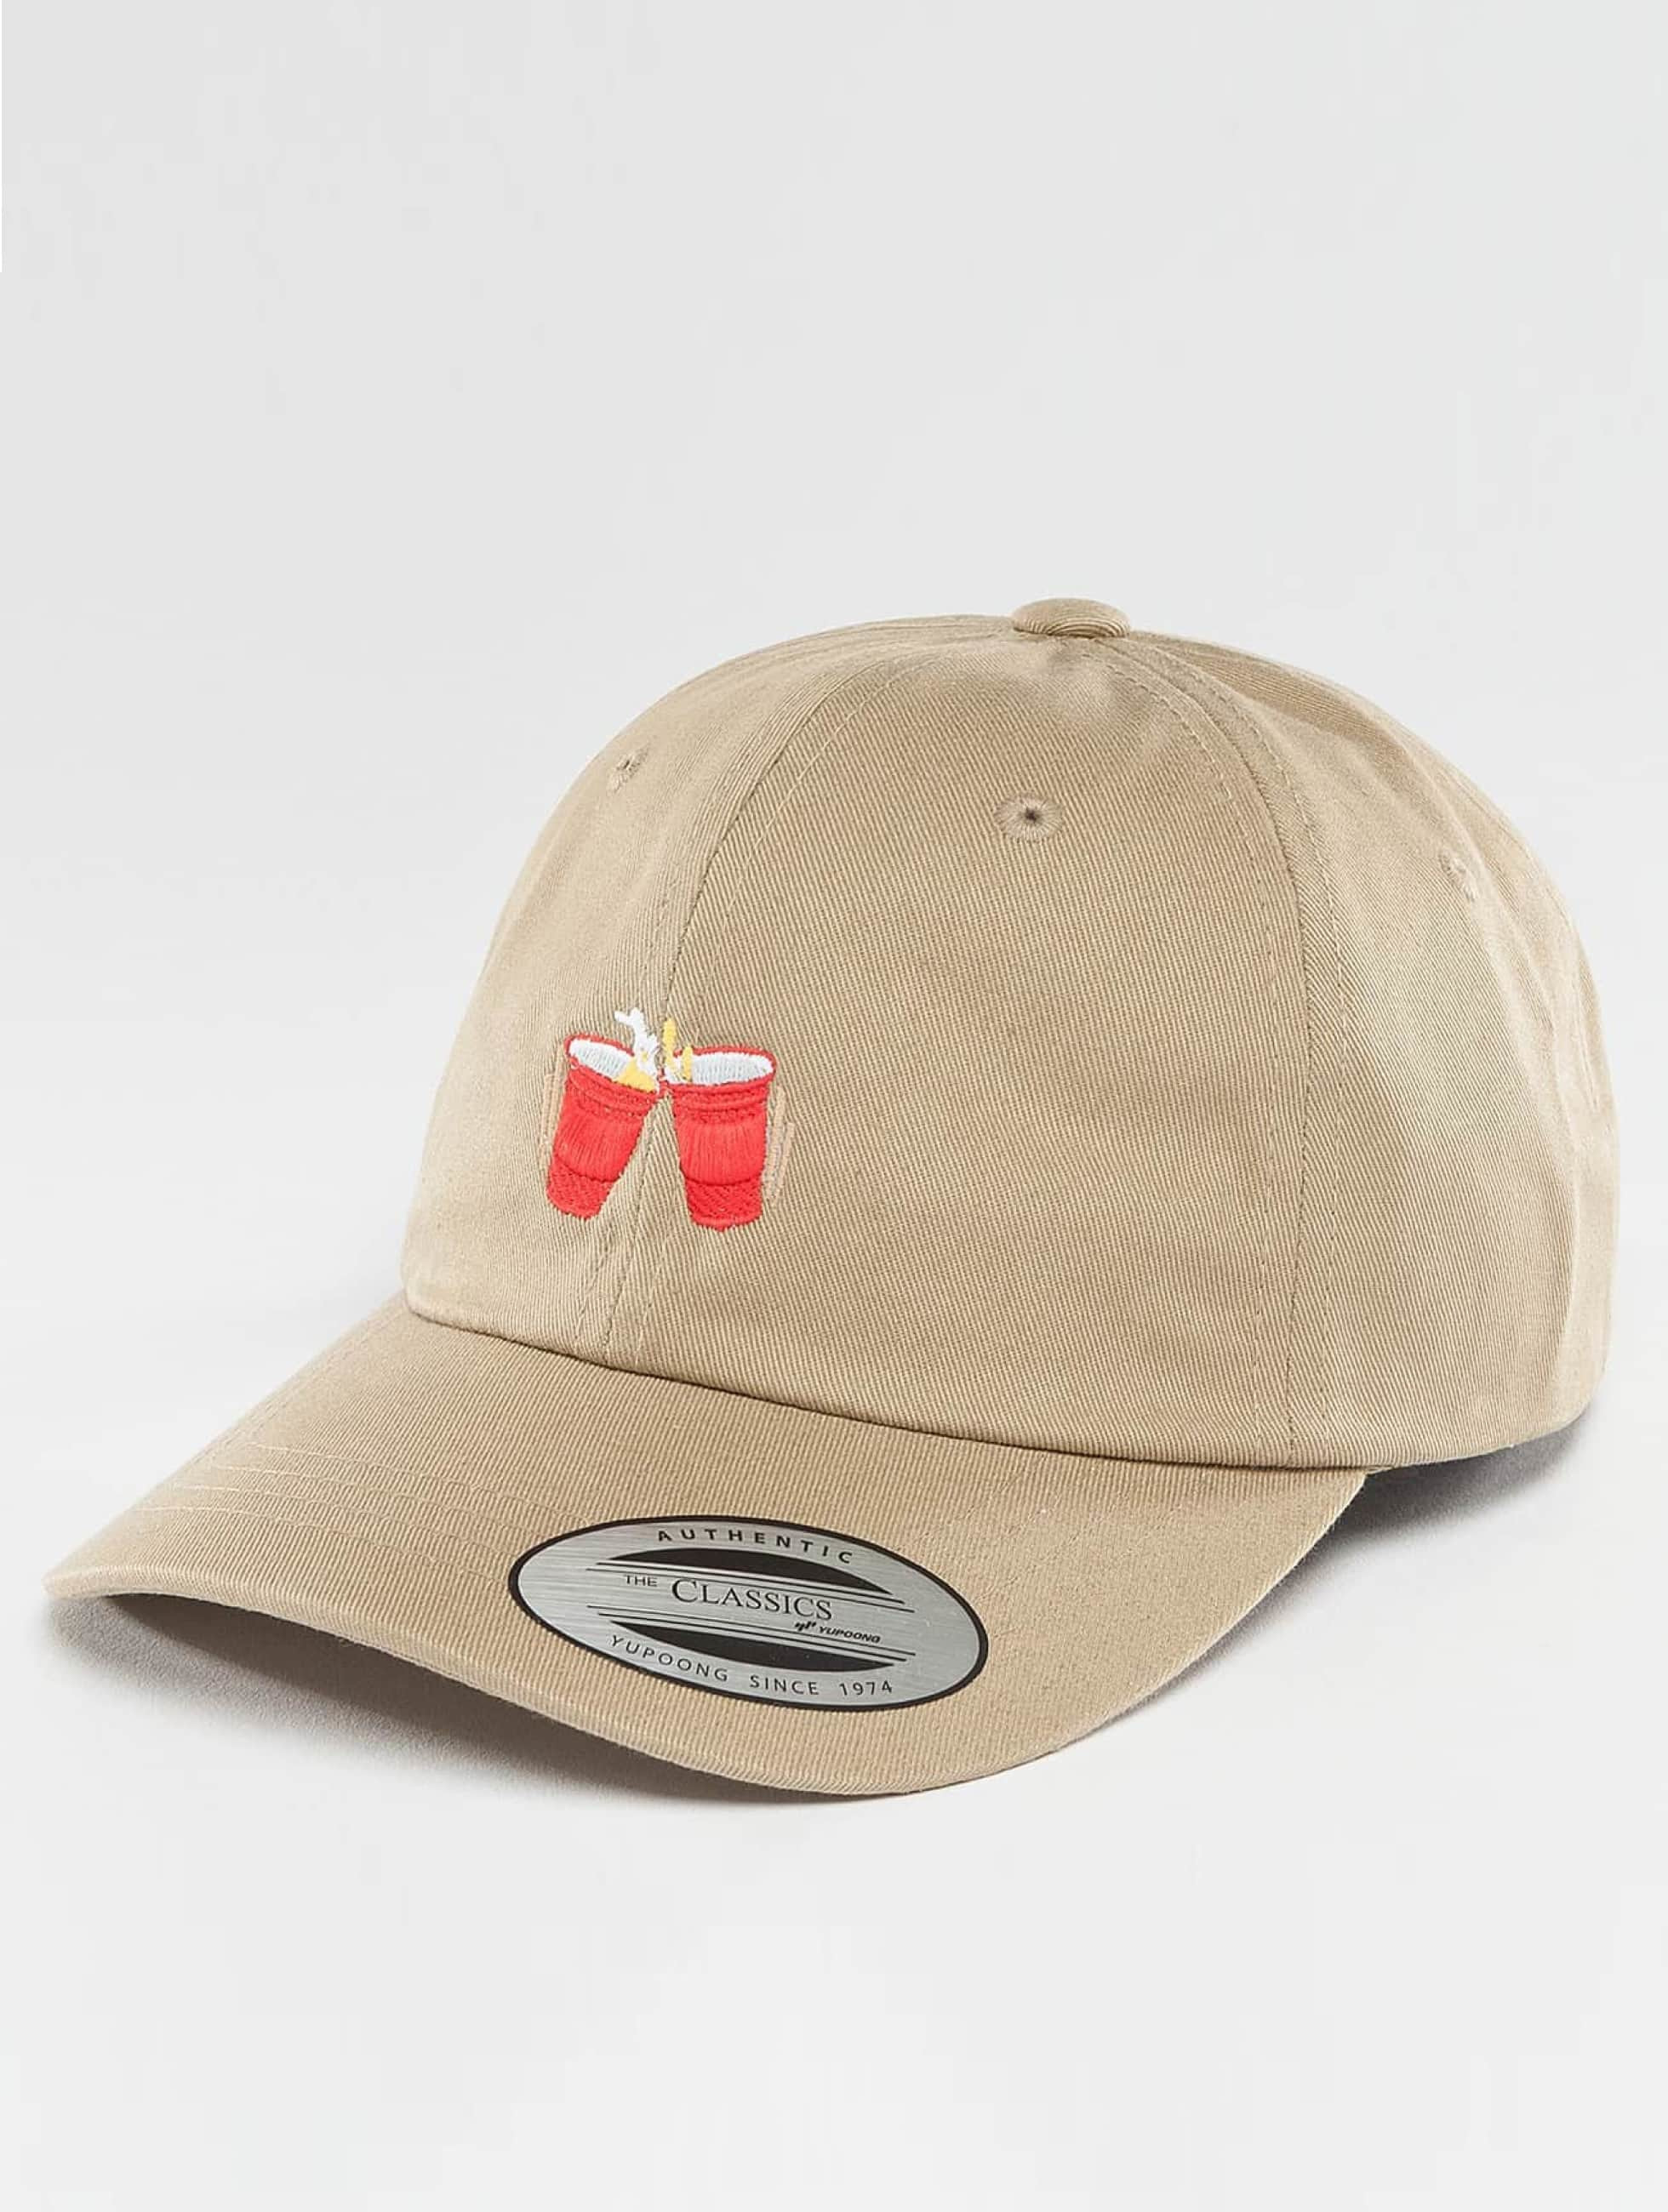 TurnUP Männer,Frauen Snapback Cap Wasted in khaki